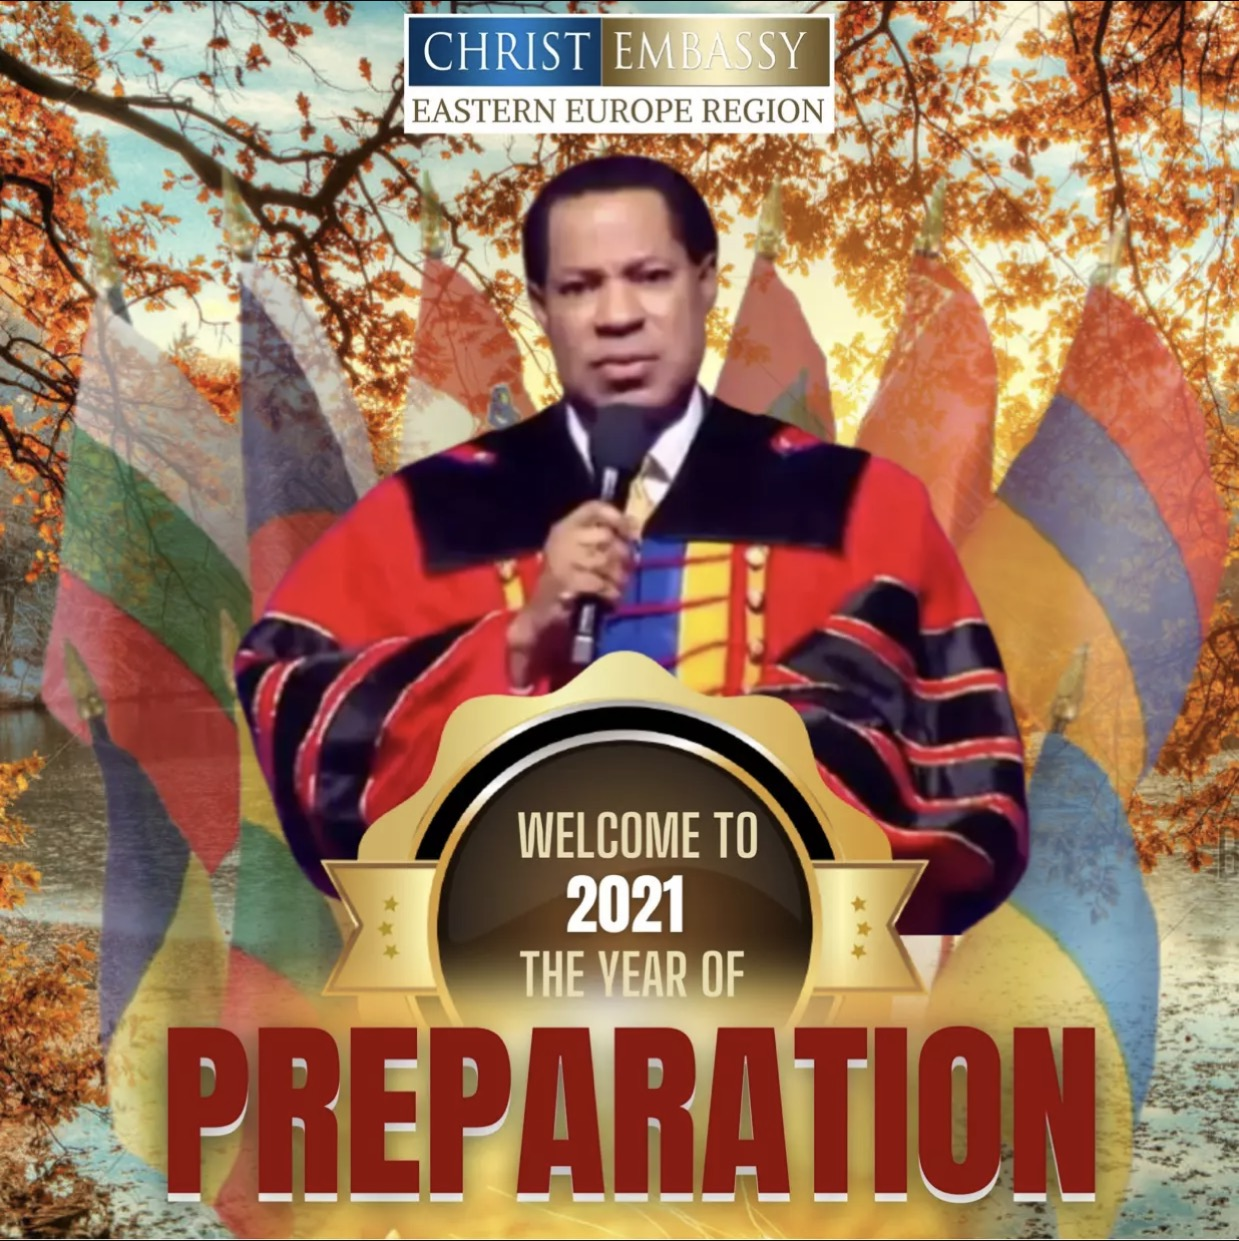 It's mY year of Preparation.